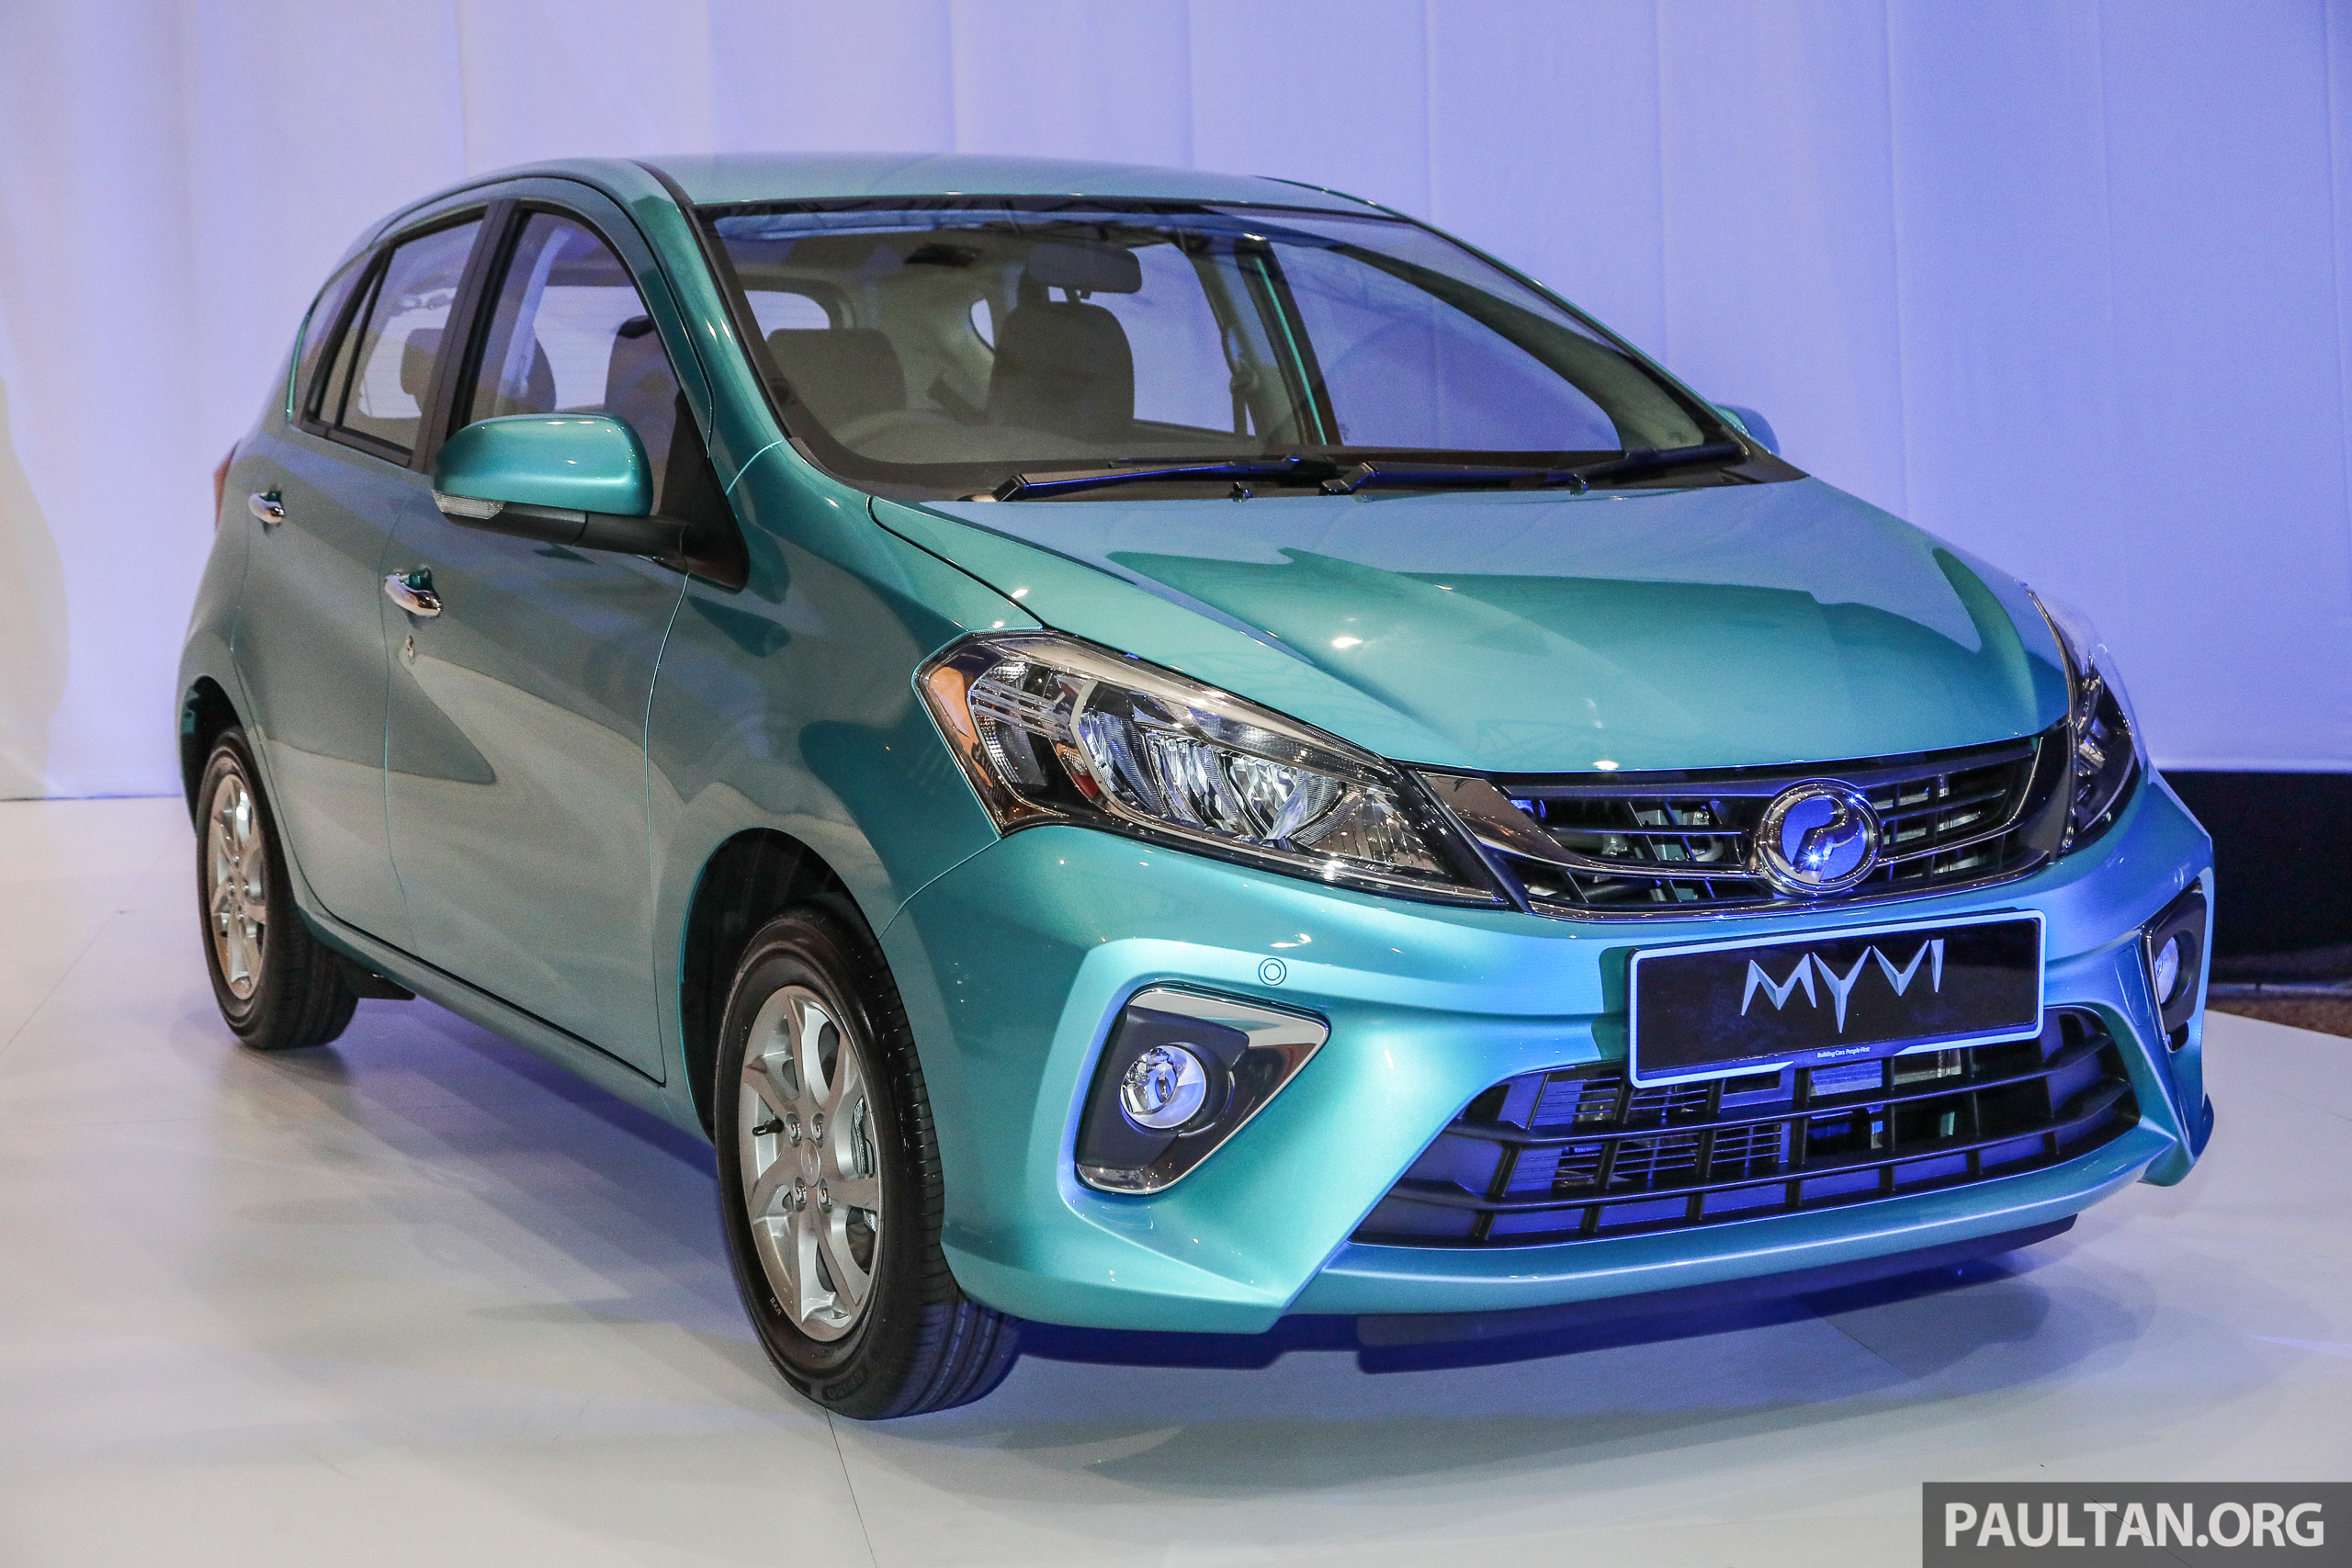 2018 Myvi Review >> 2018 Perodua Myvi officially launched in Malaysia – now with full details and pics, priced from ...